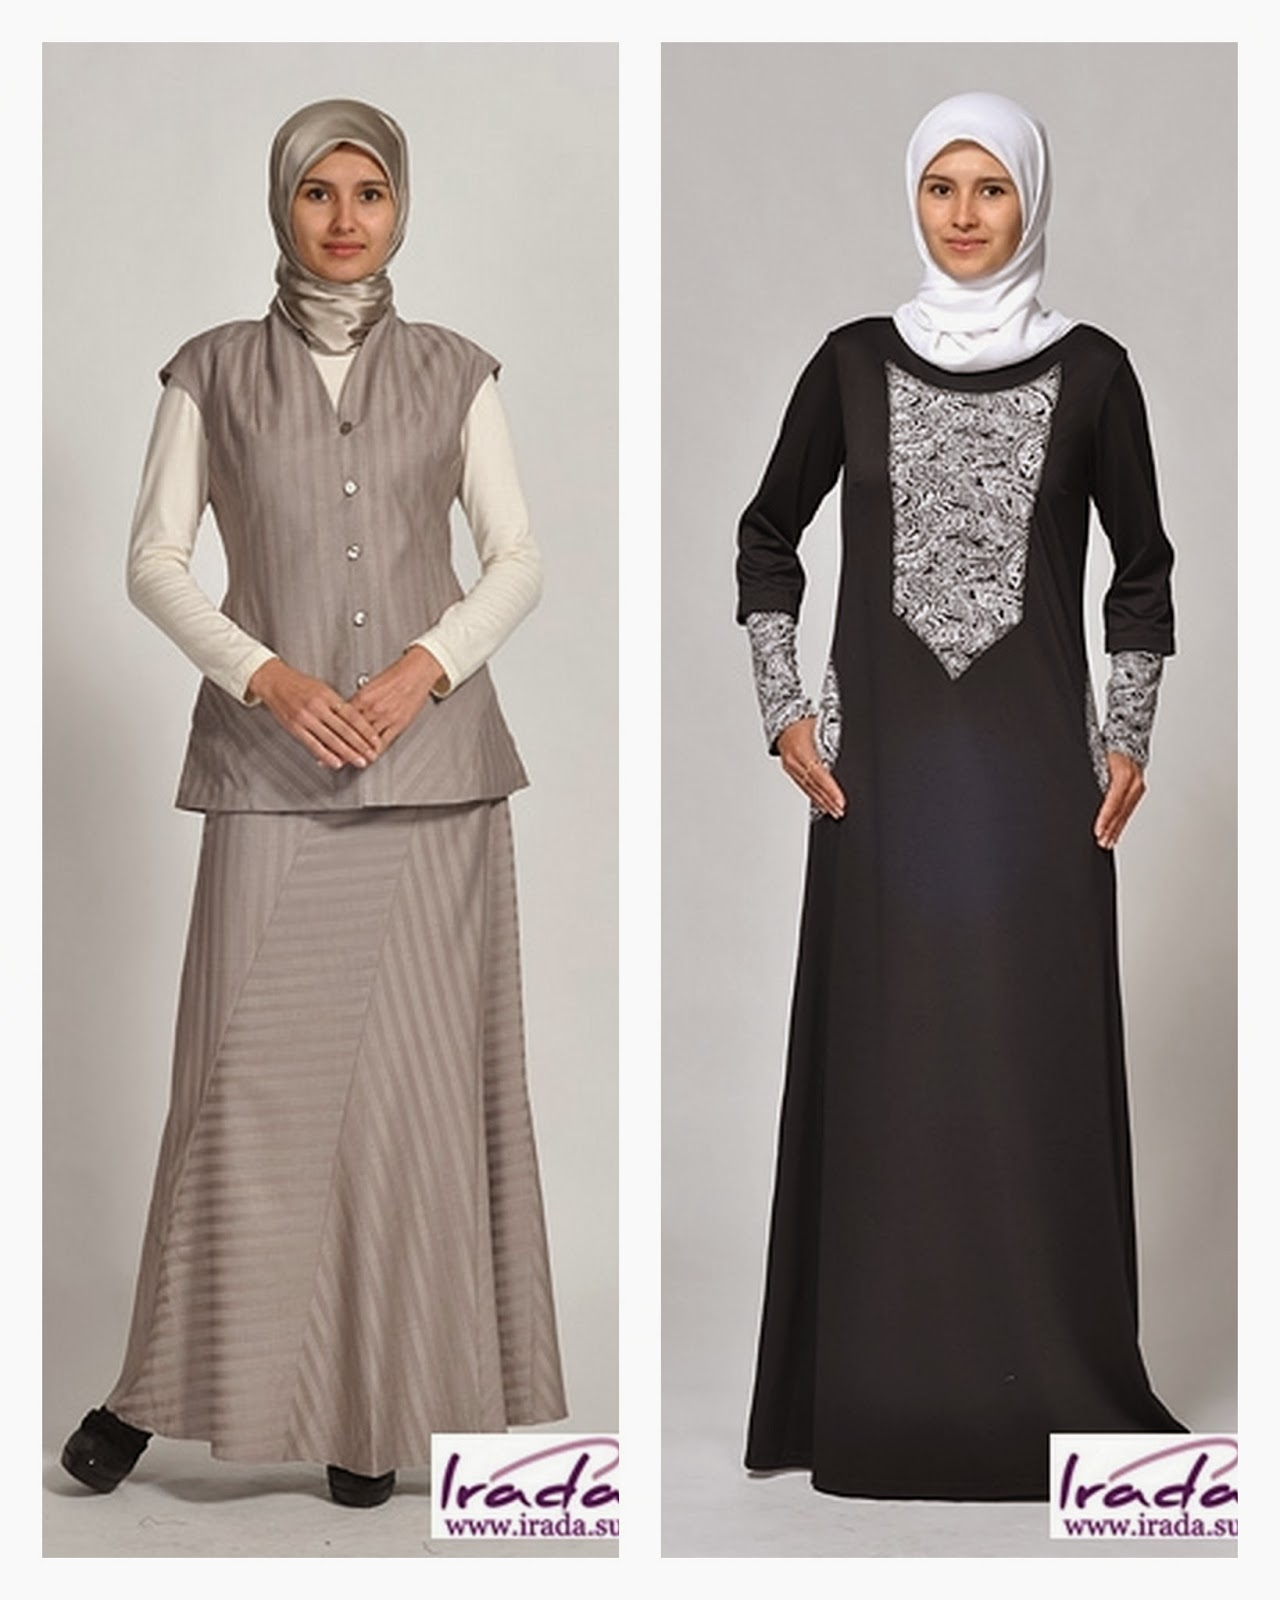 Muslim Fashion Around the World: December 2013